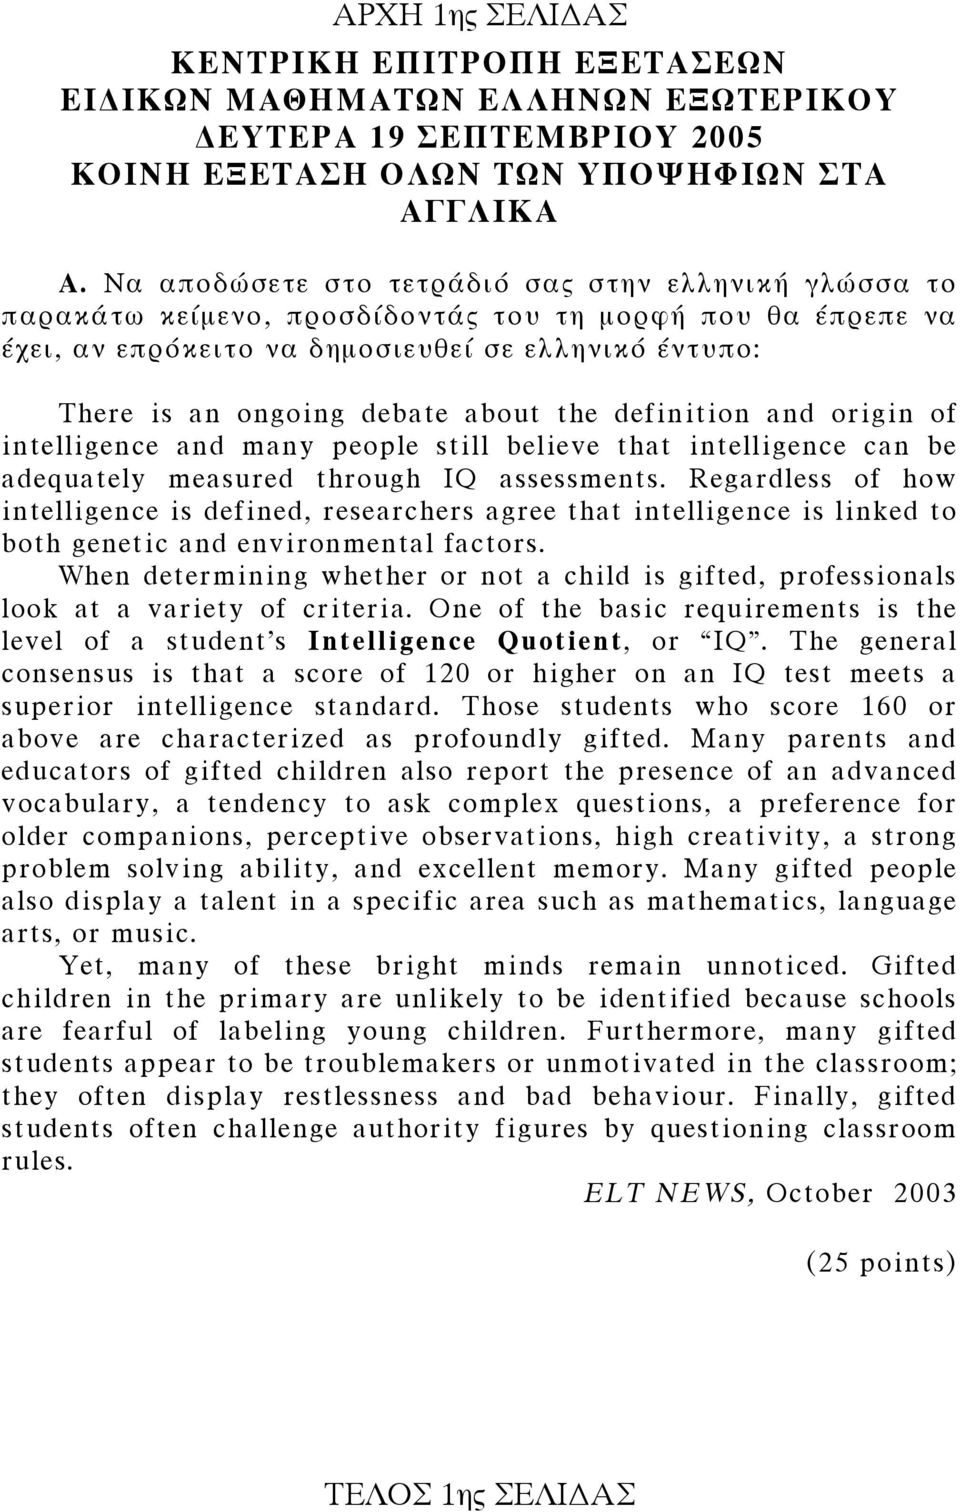 about the definition and origin of intelligence and many people still believe that intelligence can be adequately measured through IQ assessments.